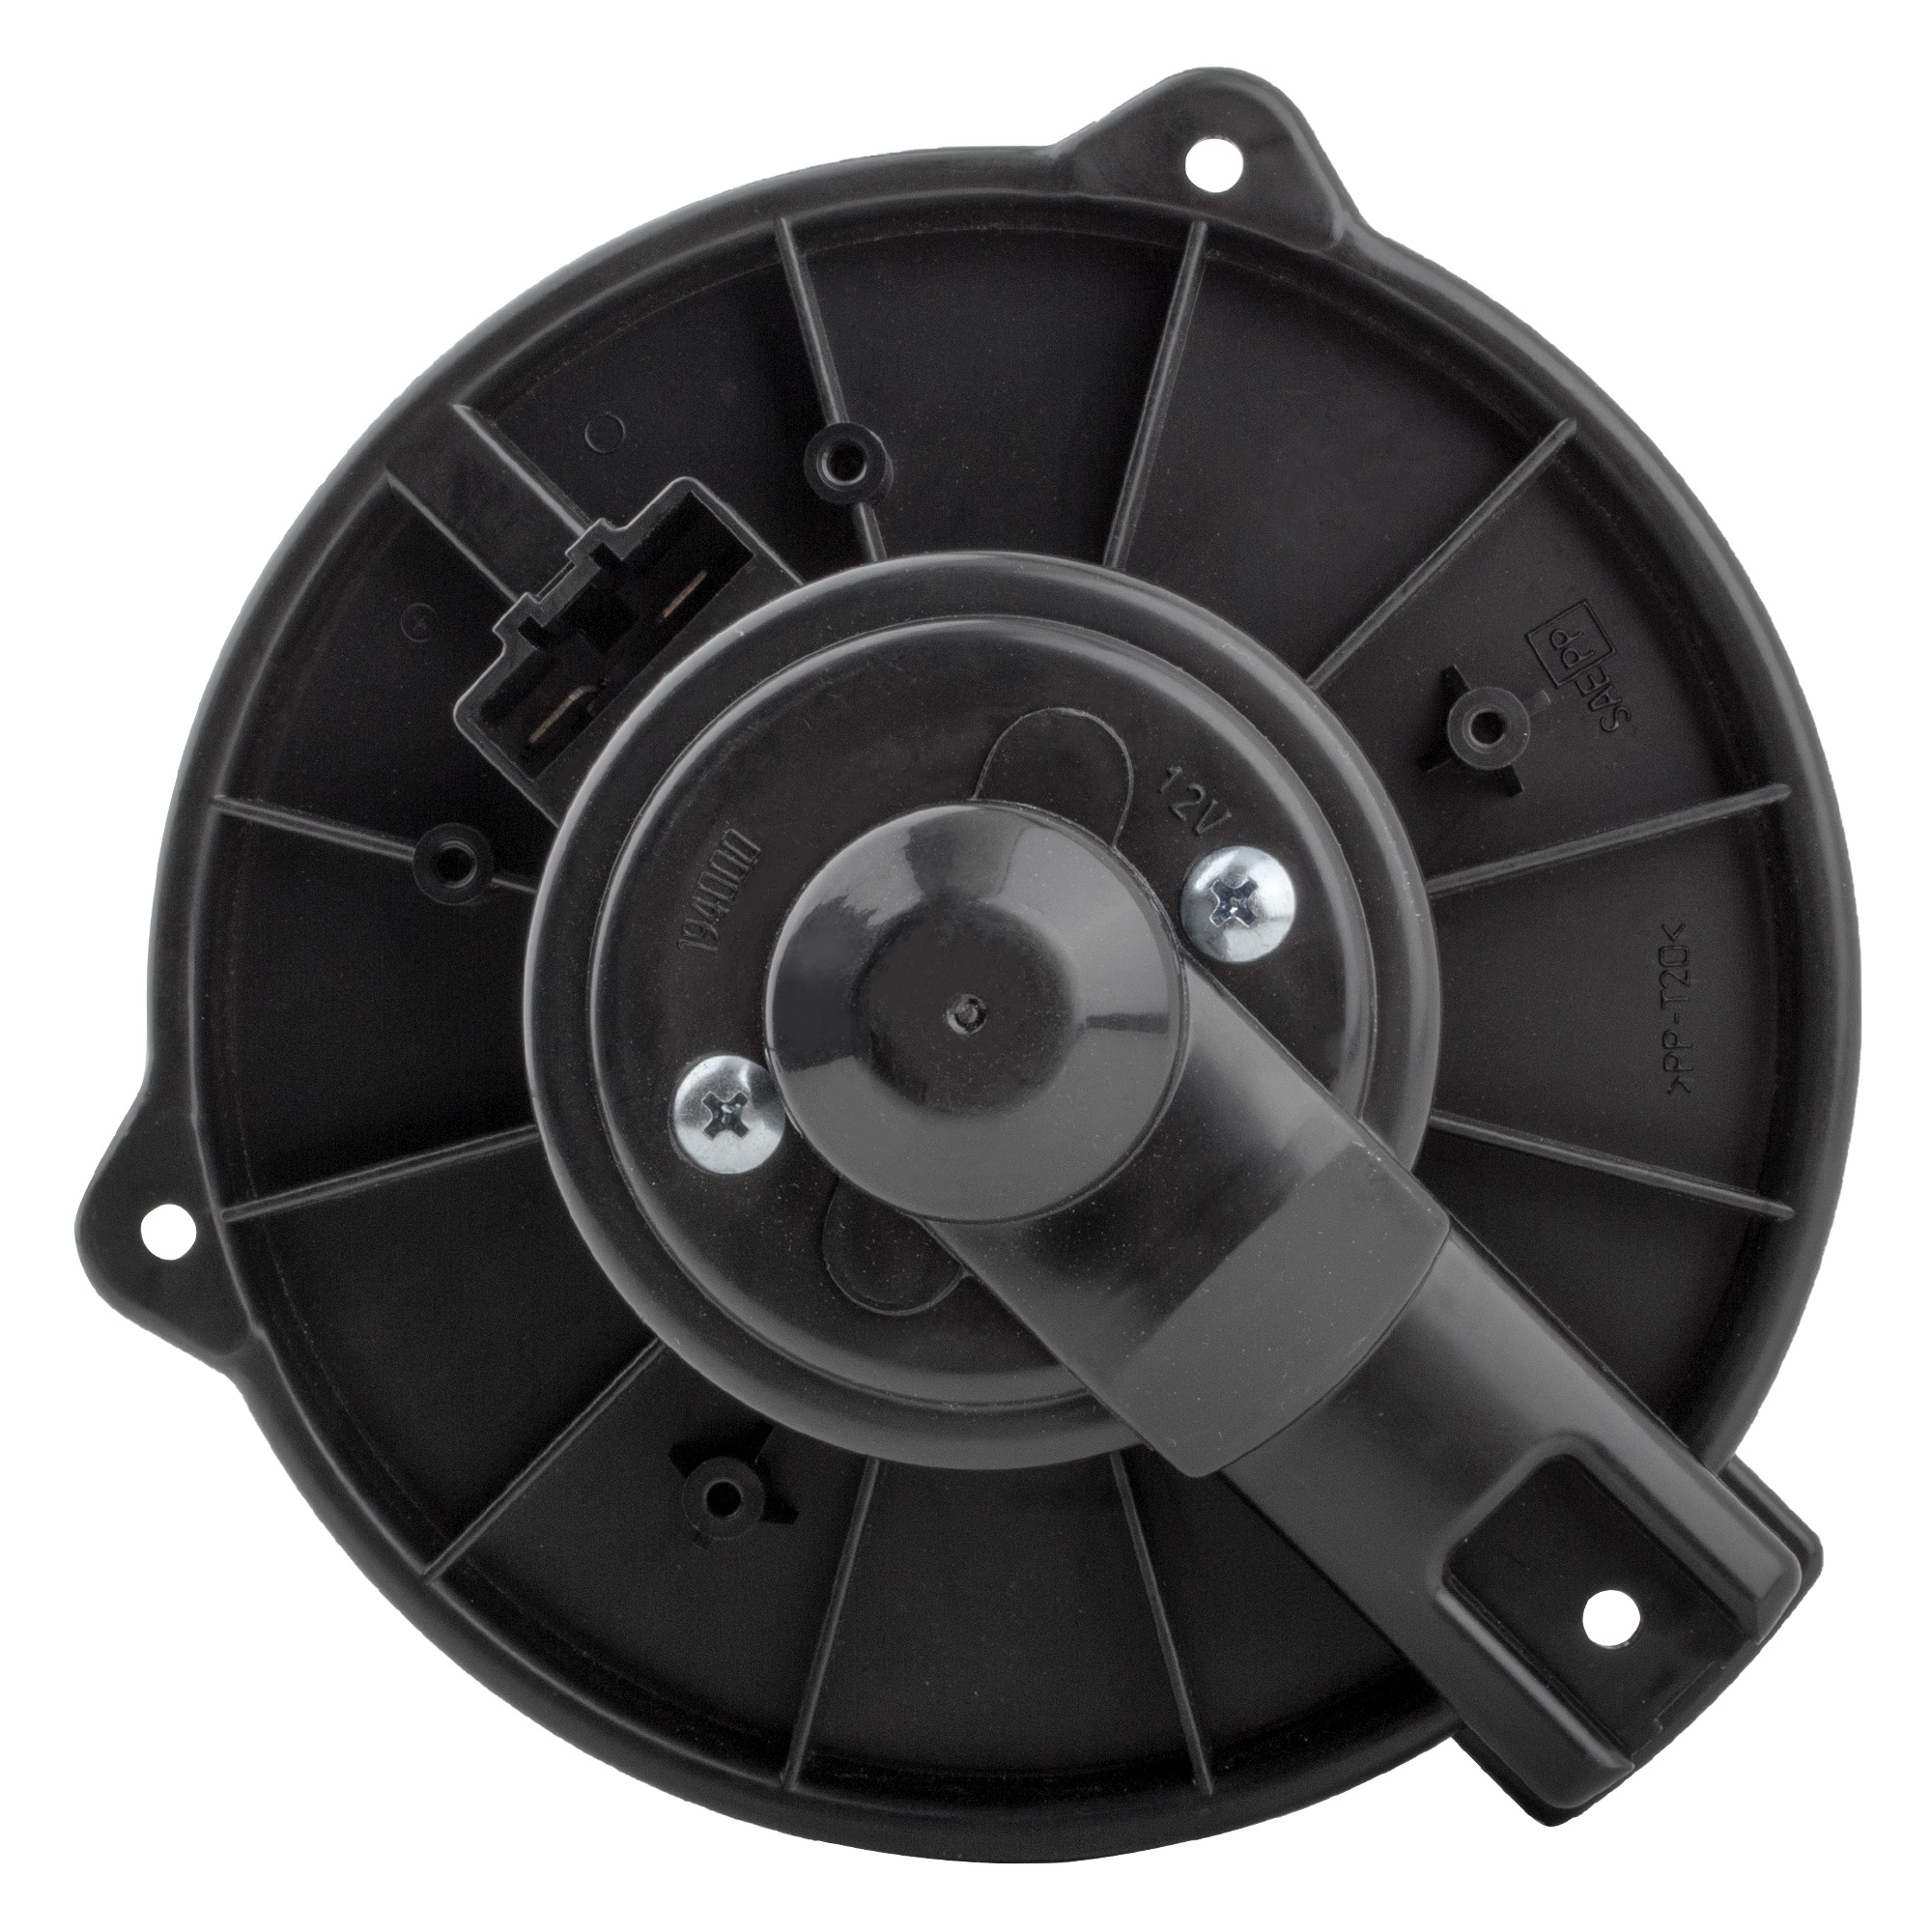 AUTEX HVAC Blower Motor Assembly Compatible with LEXUS GS300 1998-2005,LEXUS GS400 98-00,LEXUS GS430 01-05,LEXUS RX300 99-03,LEXUS SC430 02-10,TOYOTA HIGHLANDER 01-07 Blower Motor with Fan Cage 700112